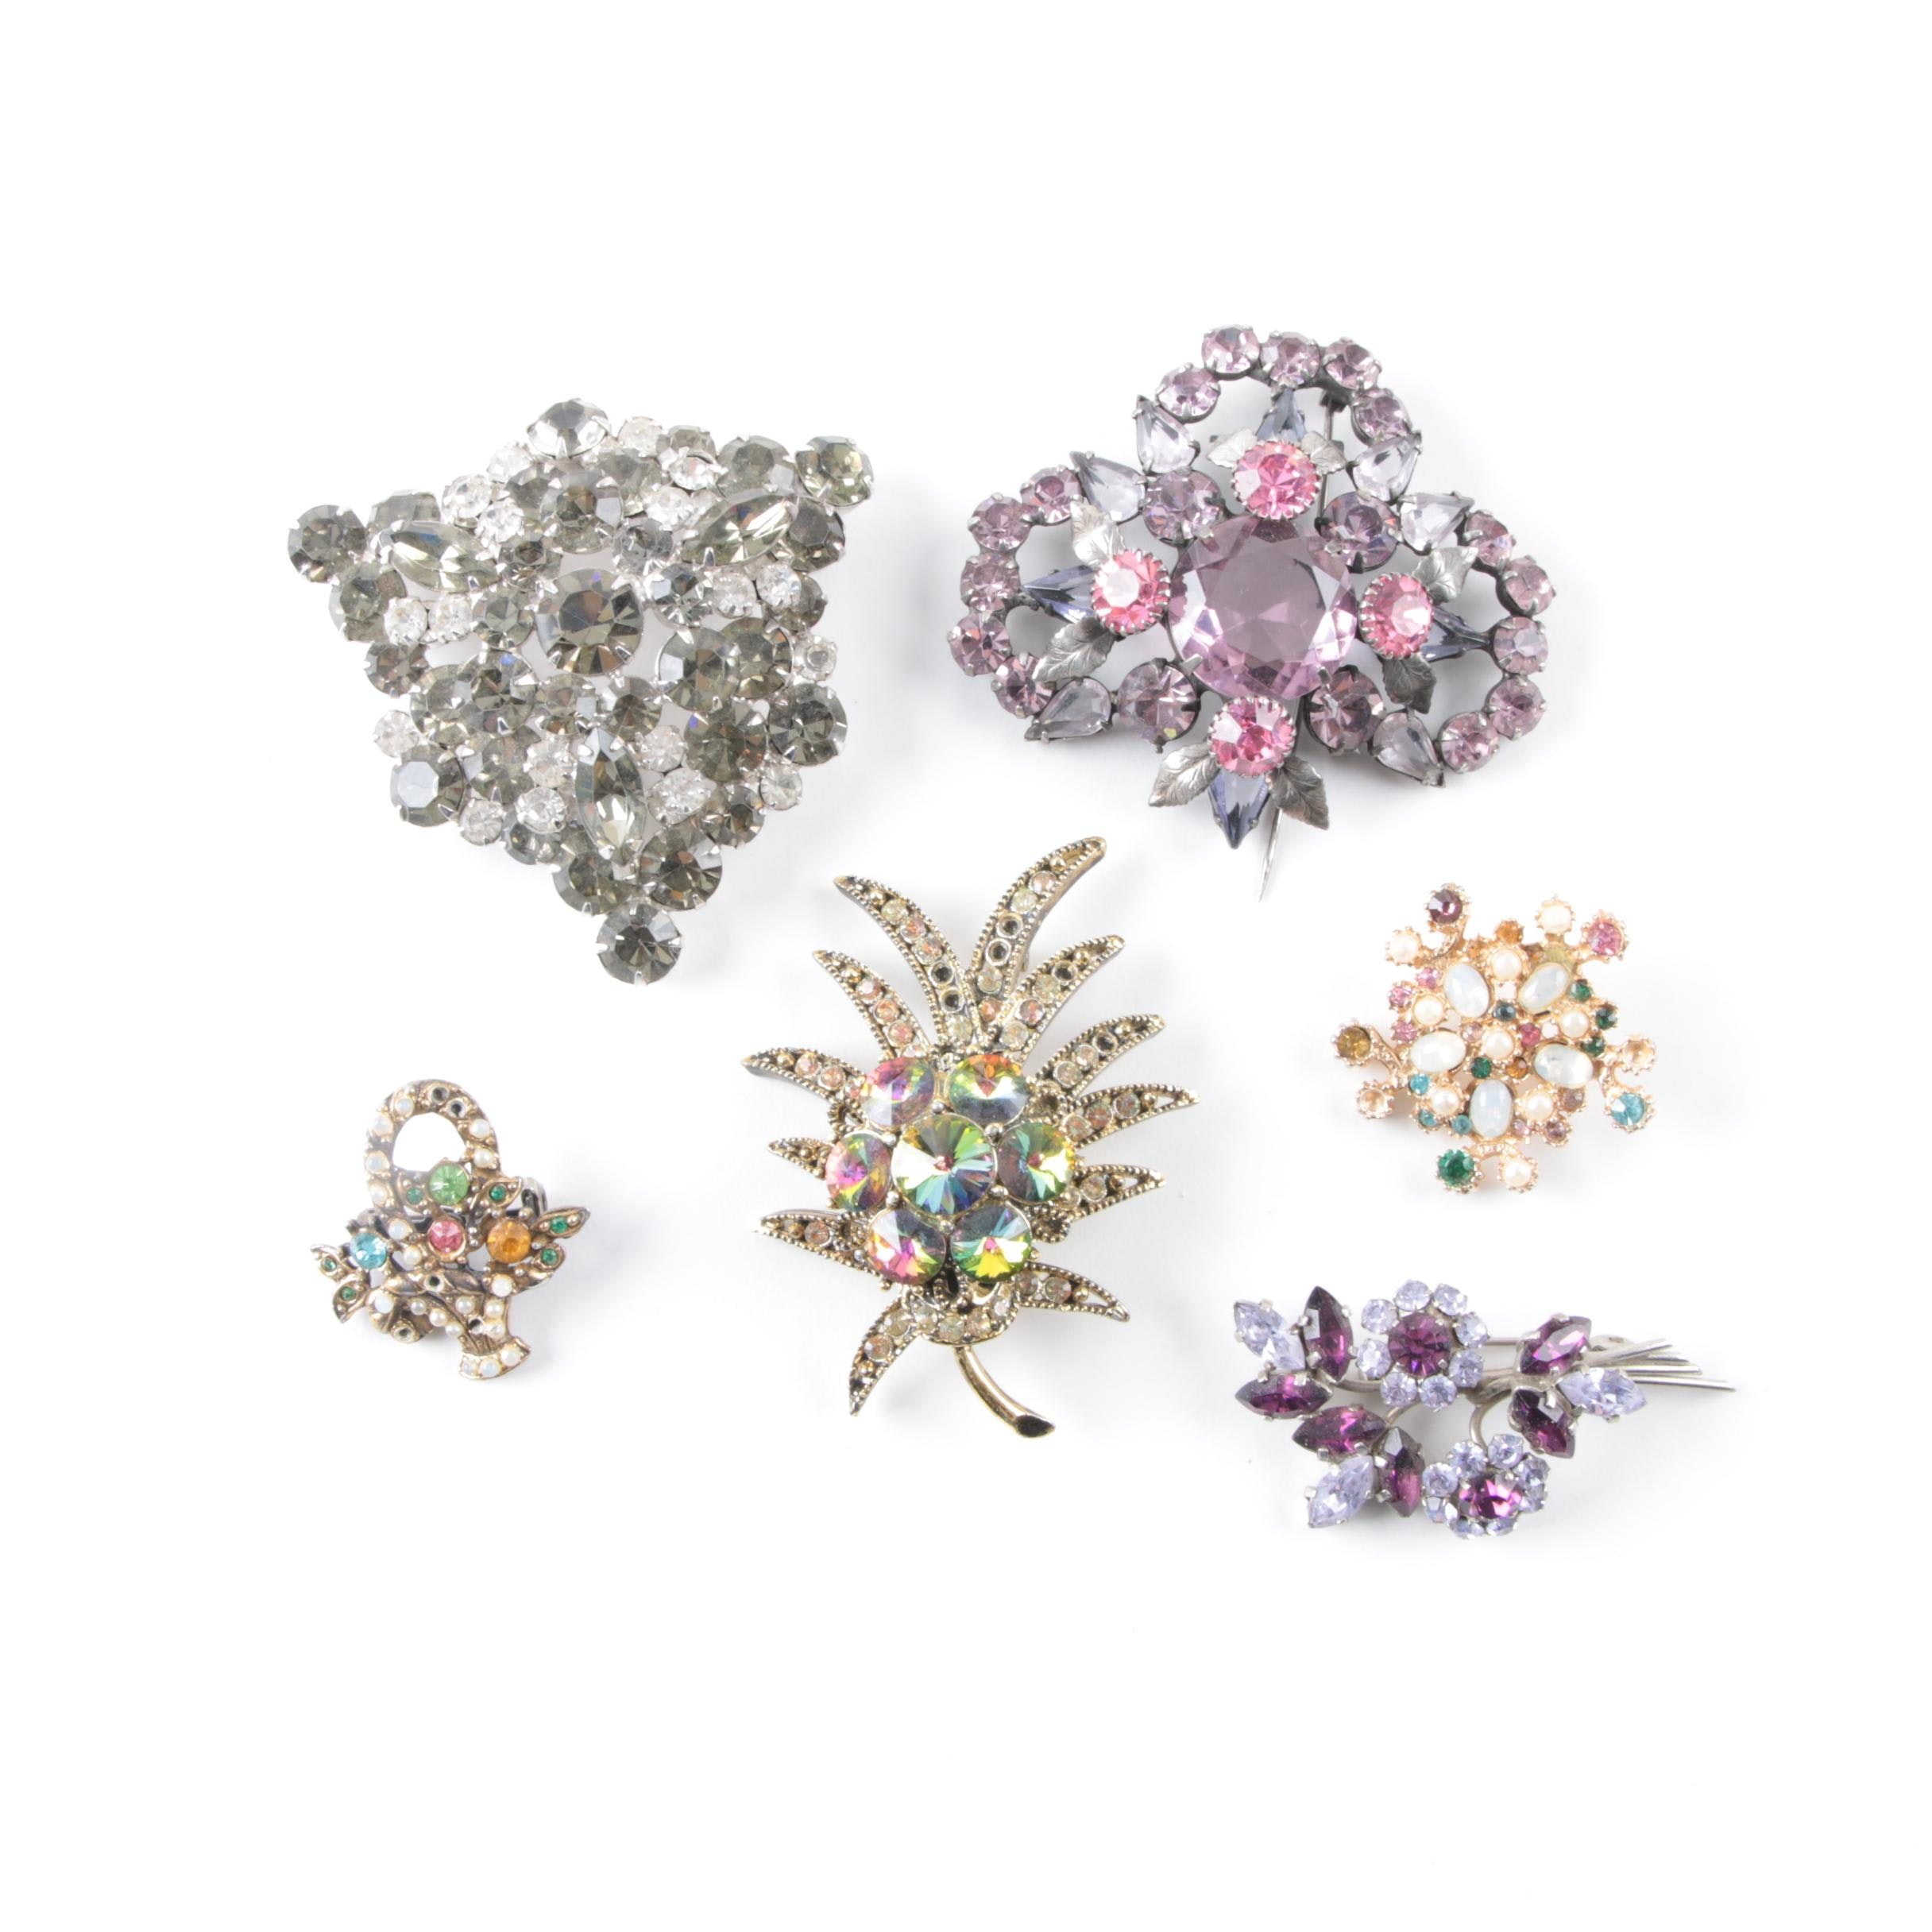 Vintage Costume Brooches Including Weiss